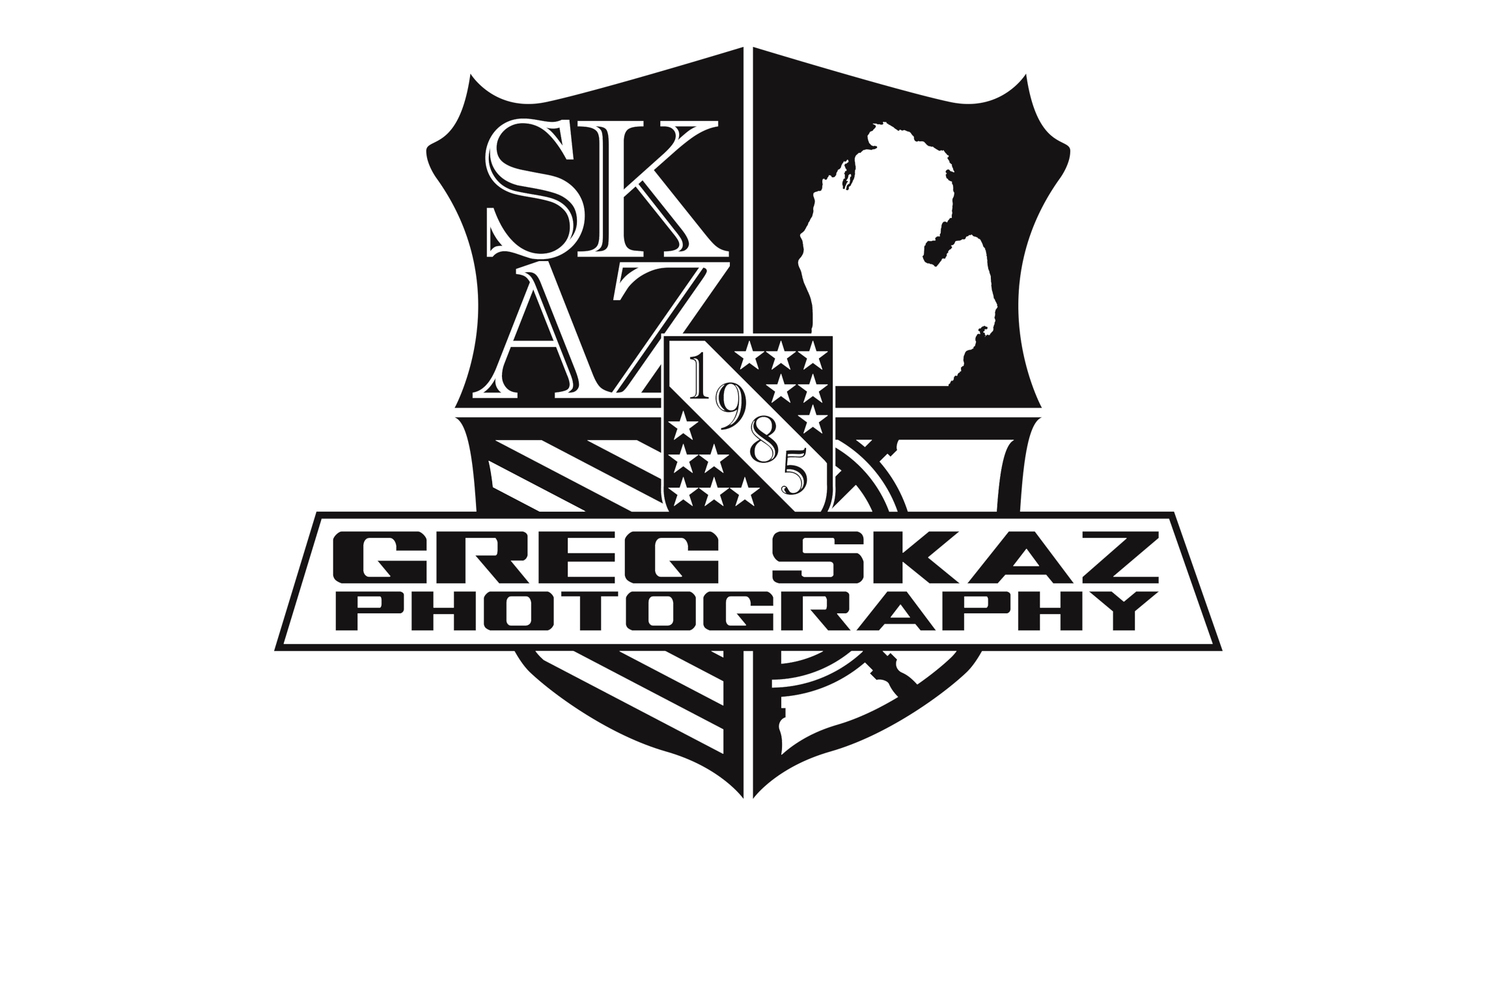 Greg Skaz Photography